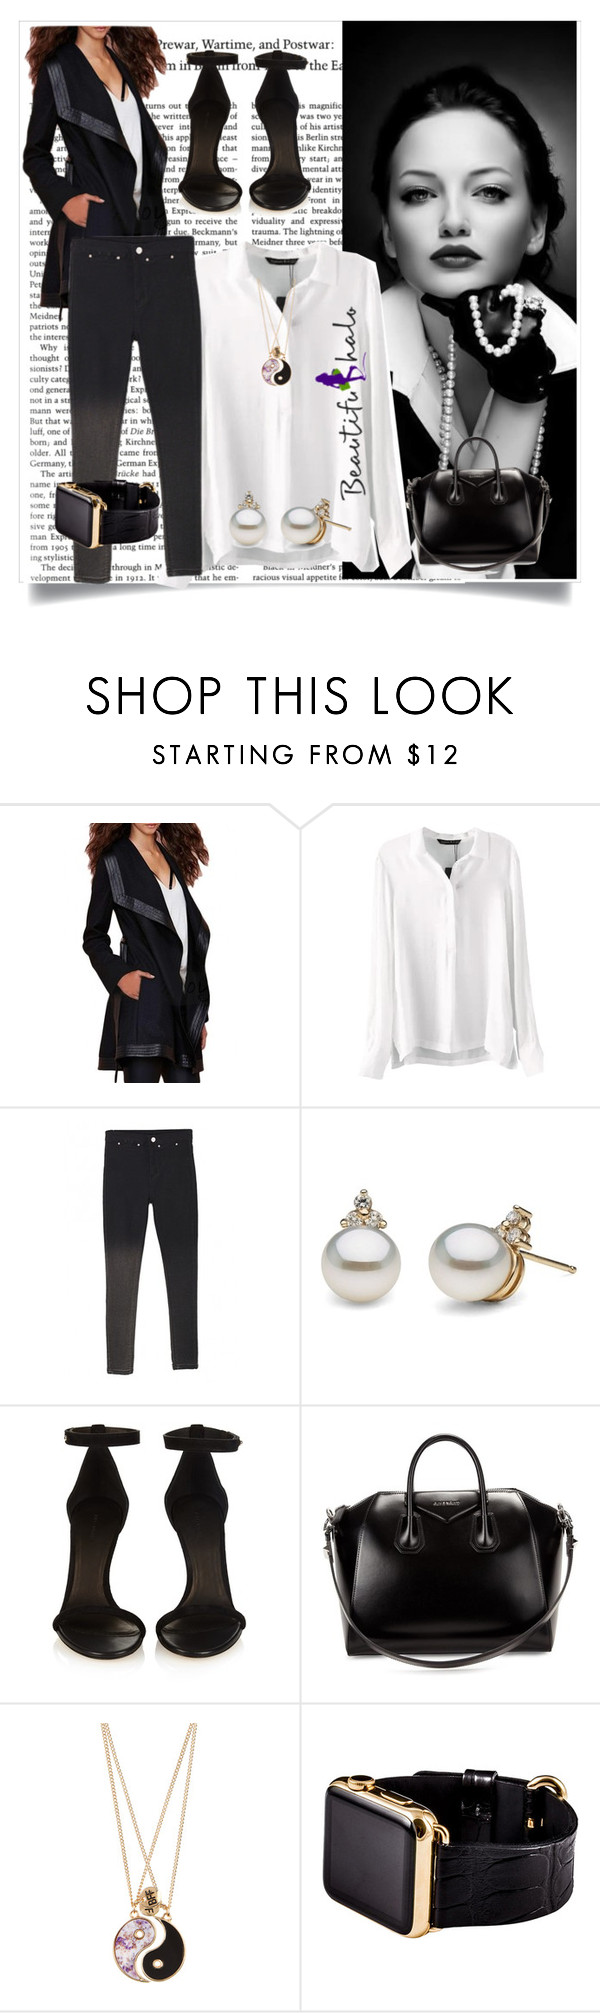 """""""beautifulhalo 123"""" by mamiigou ❤ liked on Polyvore featuring Isabel Marant, Givenchy, Accessorize, Hadoro, women's clothing, women, female, woman, misses and juniors"""